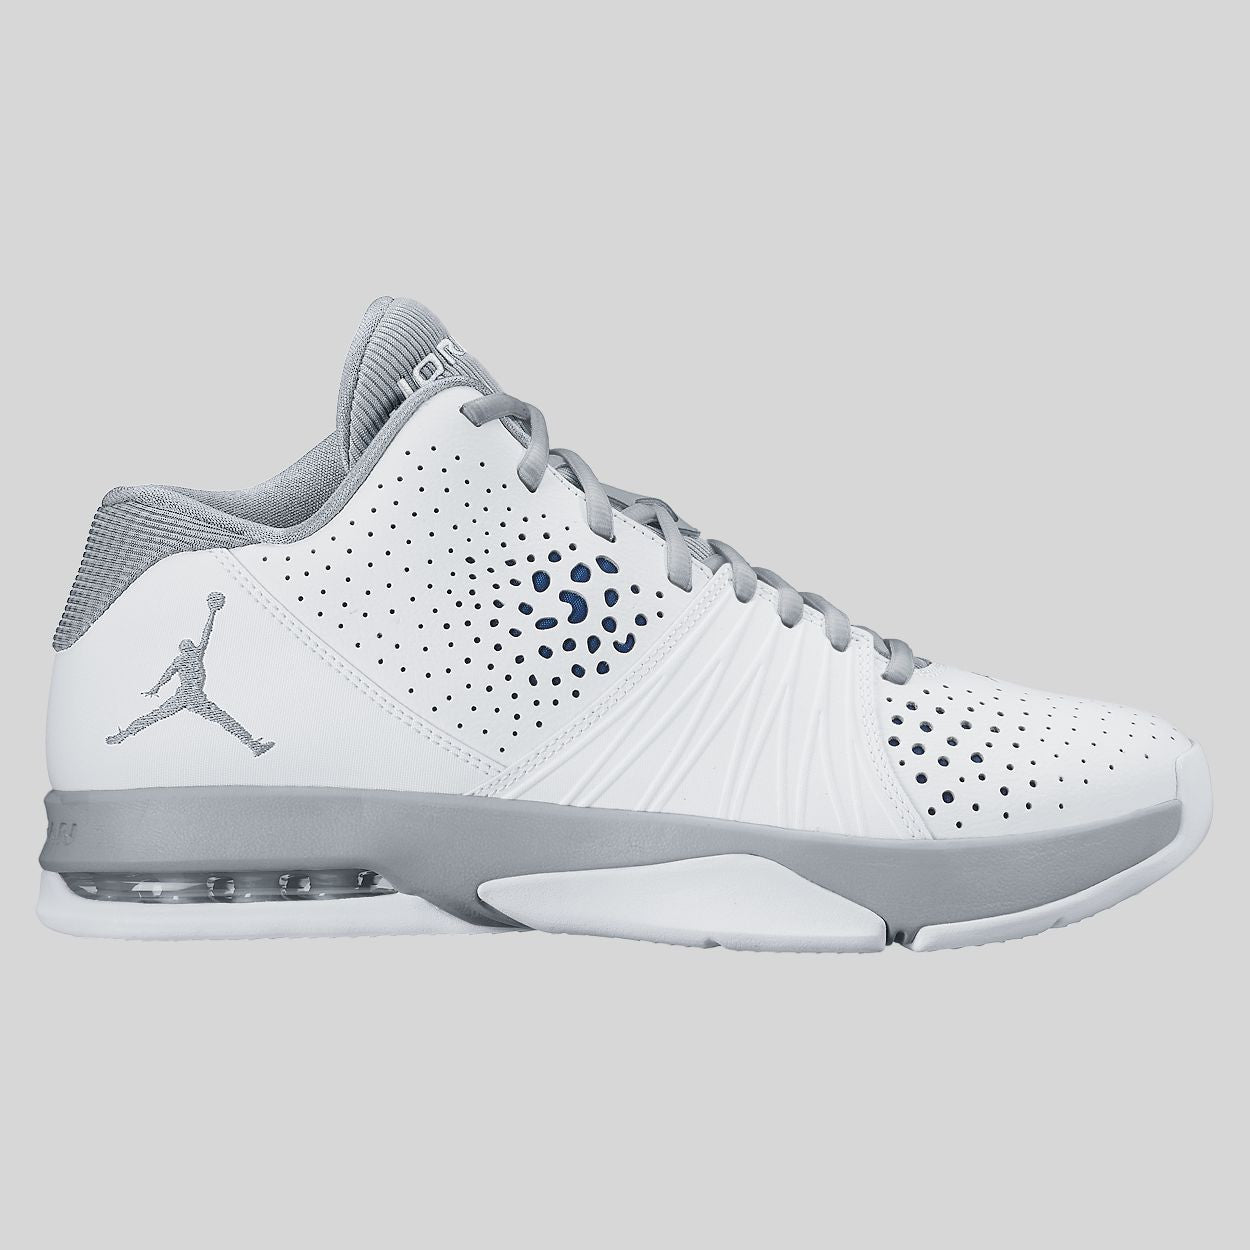 Nike Jordan 5 AM White Wolf Grey (807546-100)